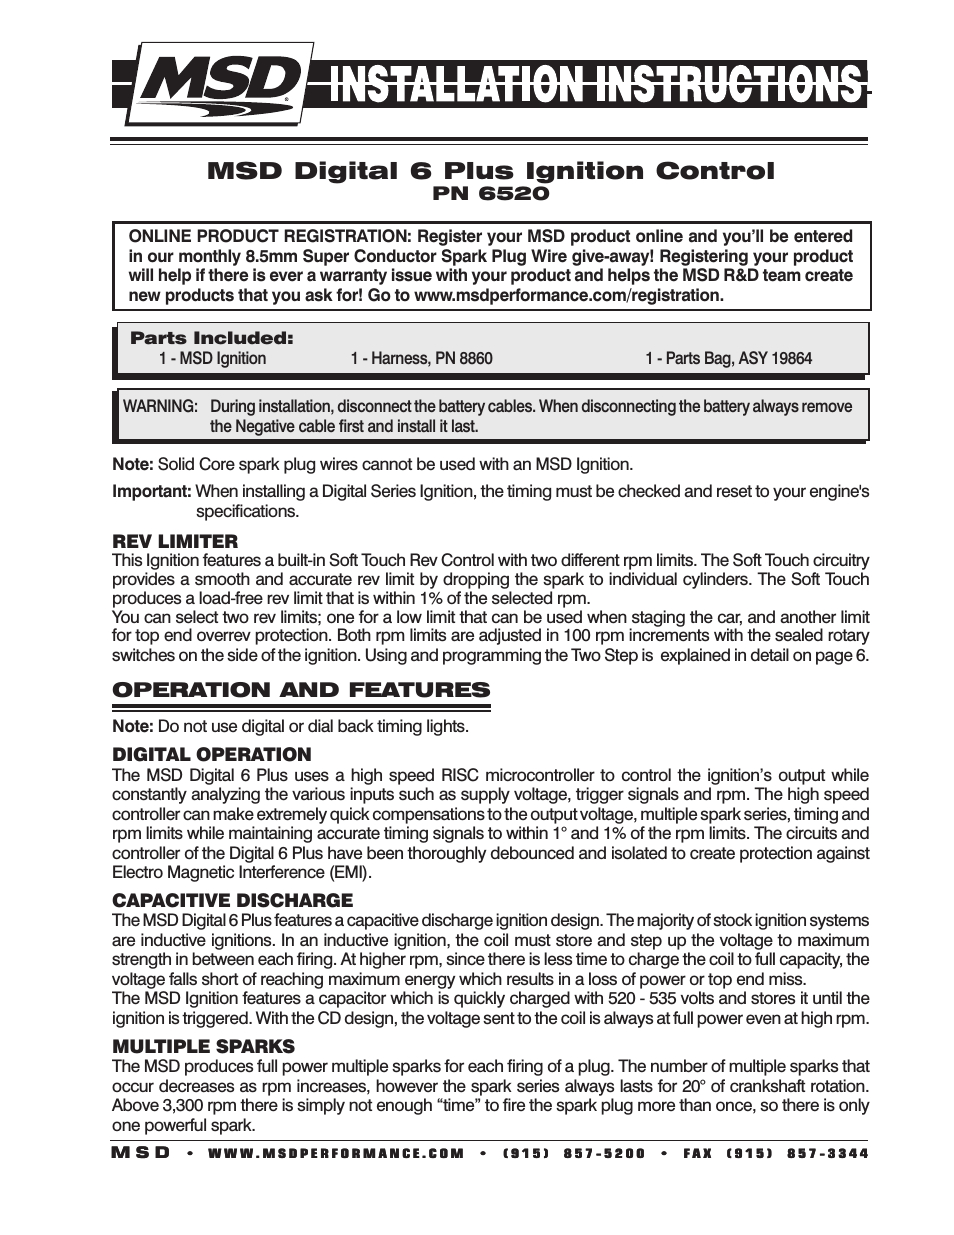 Msd 6520 Digital 6-Plus Ignition Control Installation User Manual - Msd Digital 6 Plus Wiring Diagram